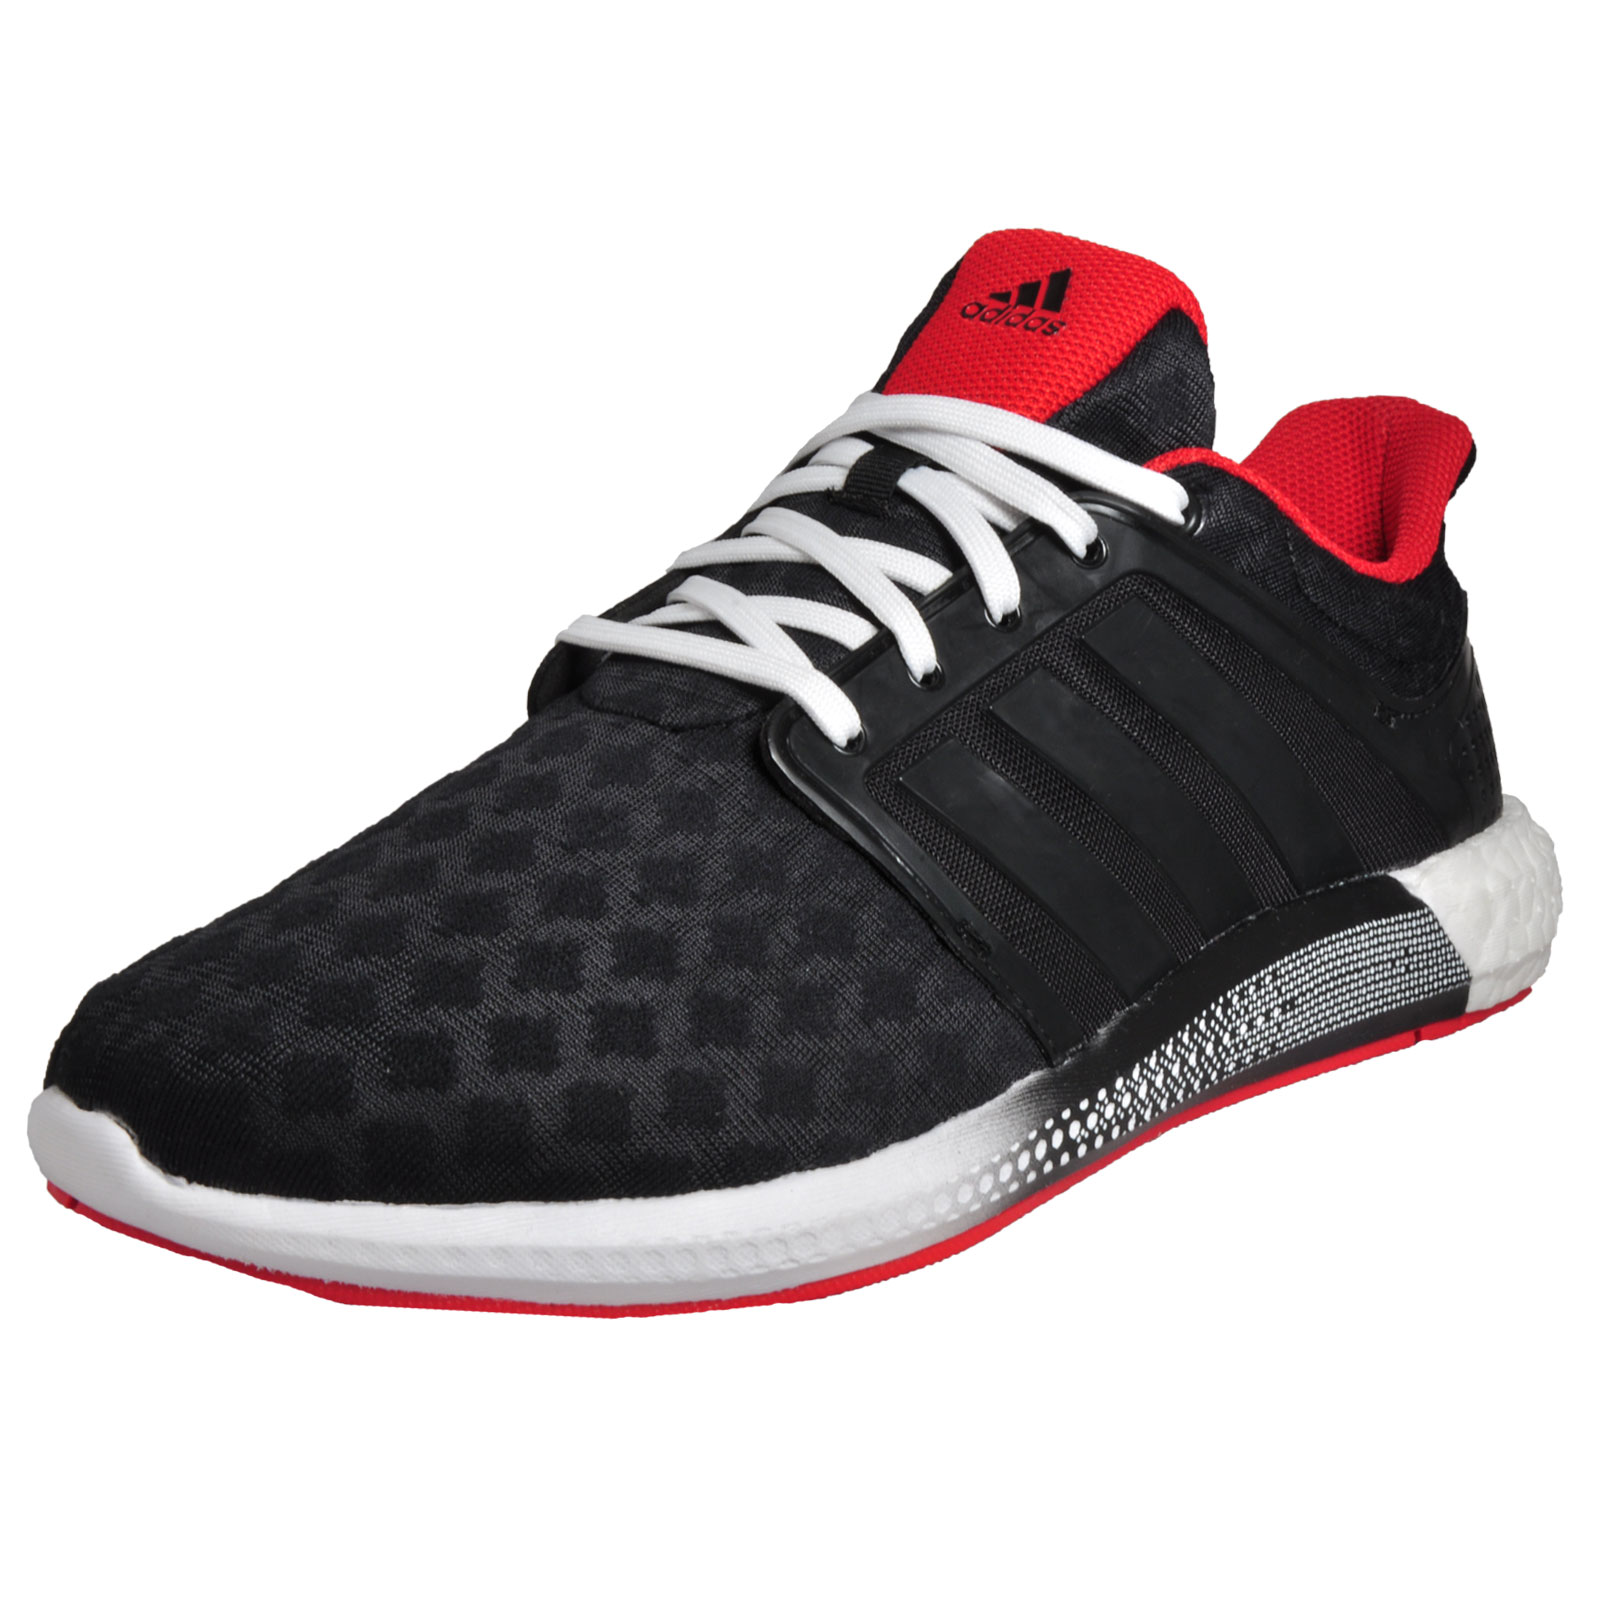 44167dd8df90c Details about Adidas Solar RNR Boost Mens Premium Performance Running Shoes  Gym Trainers Black